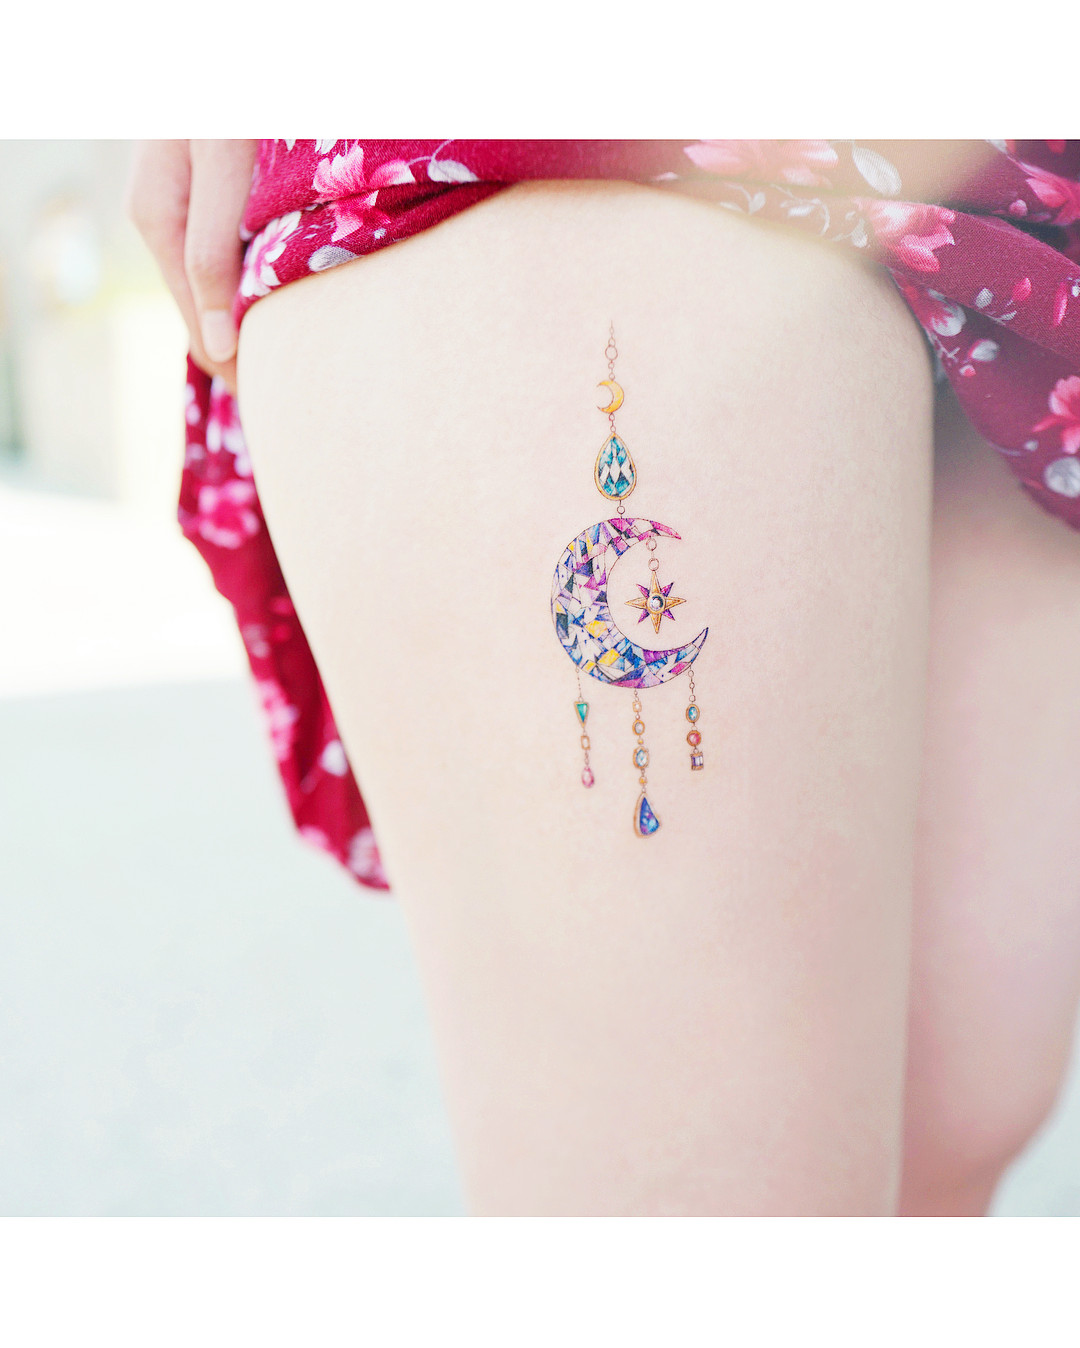 80+ Best Tattoo Ideas For Women in 2019